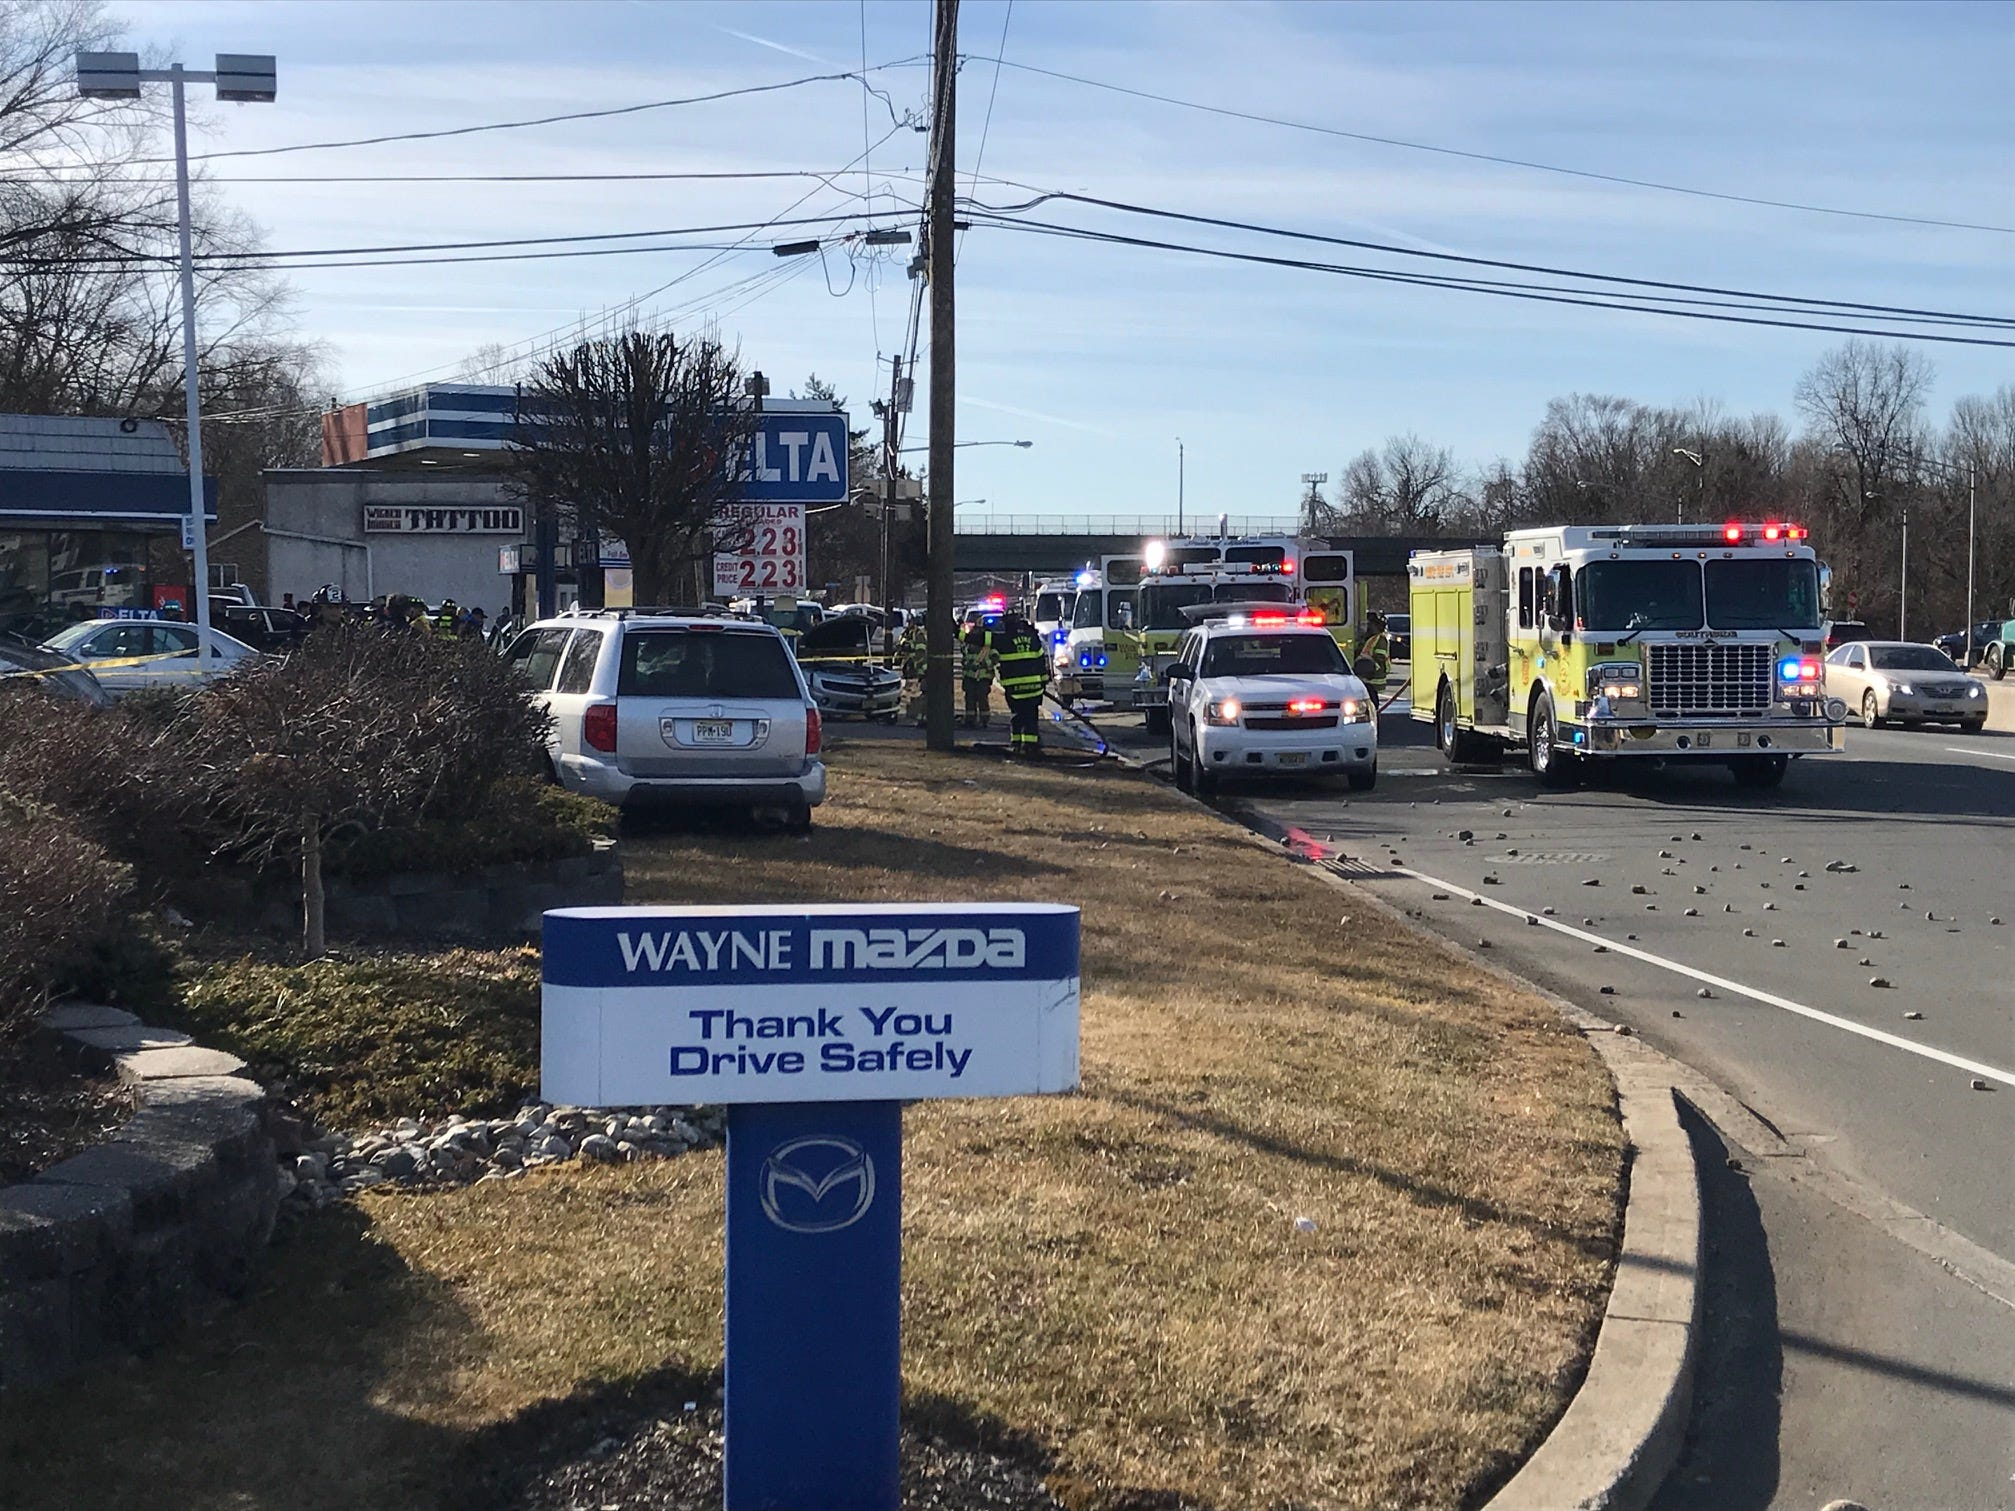 At least three cars were involved in a serious accident at the Delta Gas Station on Route 23 in Wayne.